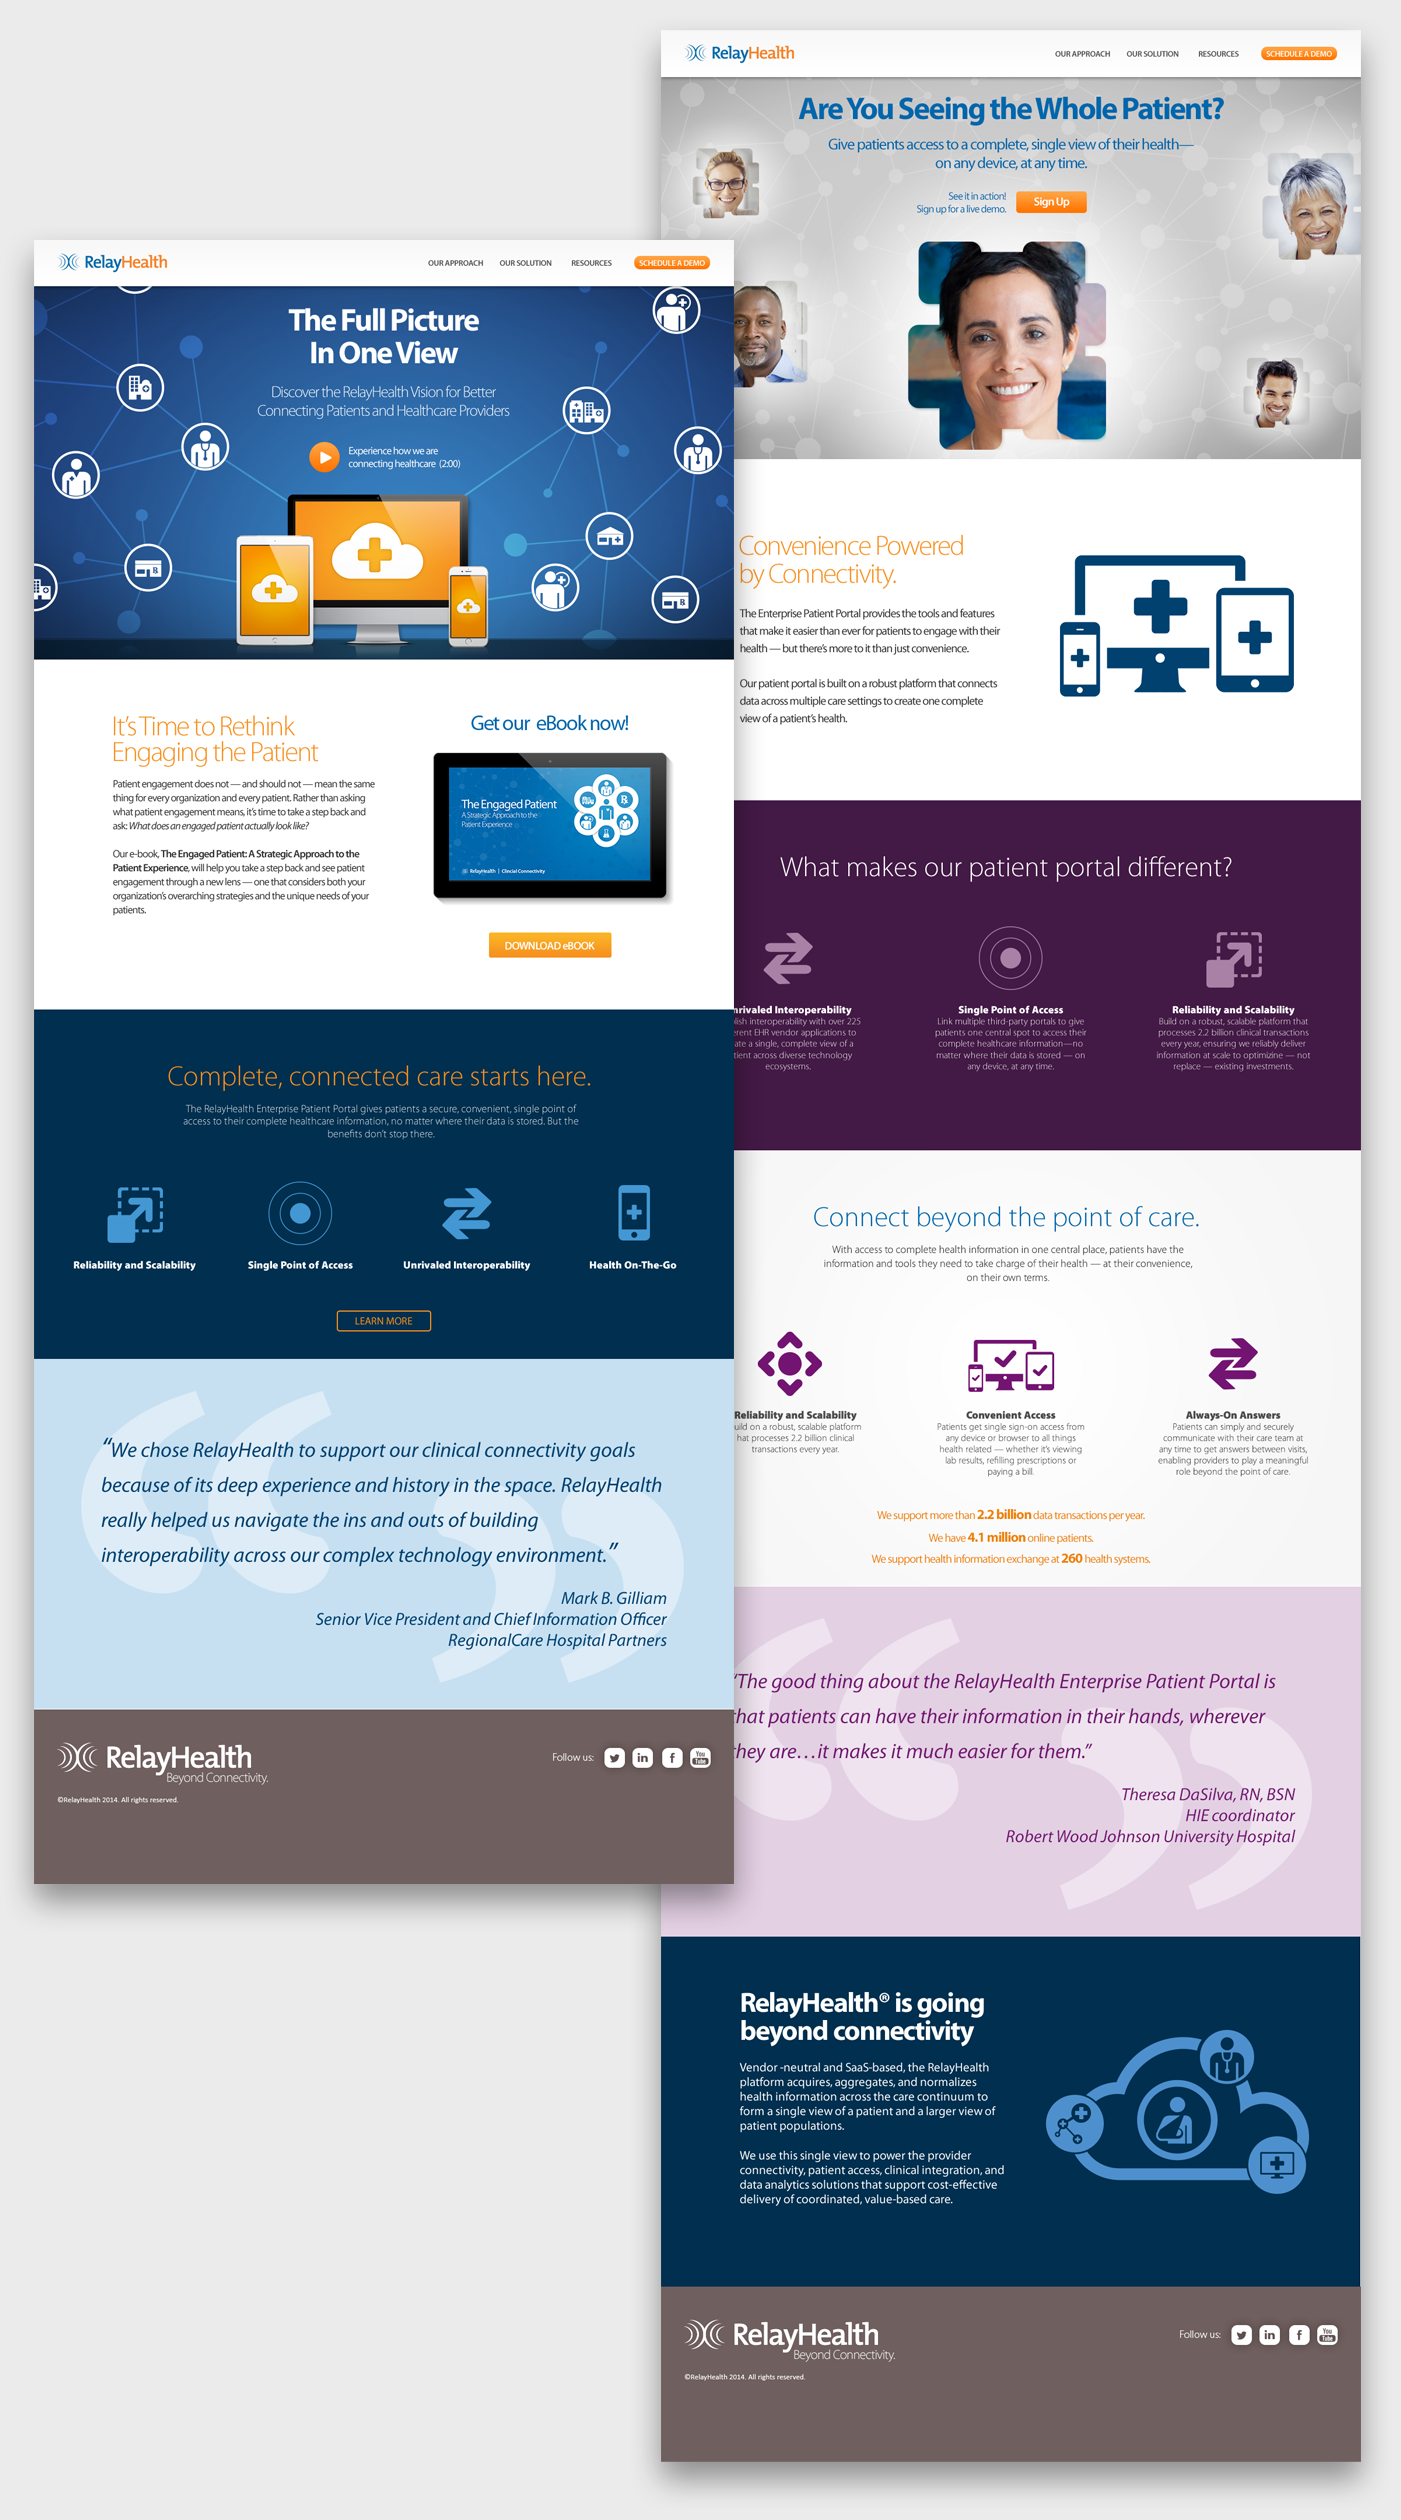 campaign_microsite-02a_page_gallery